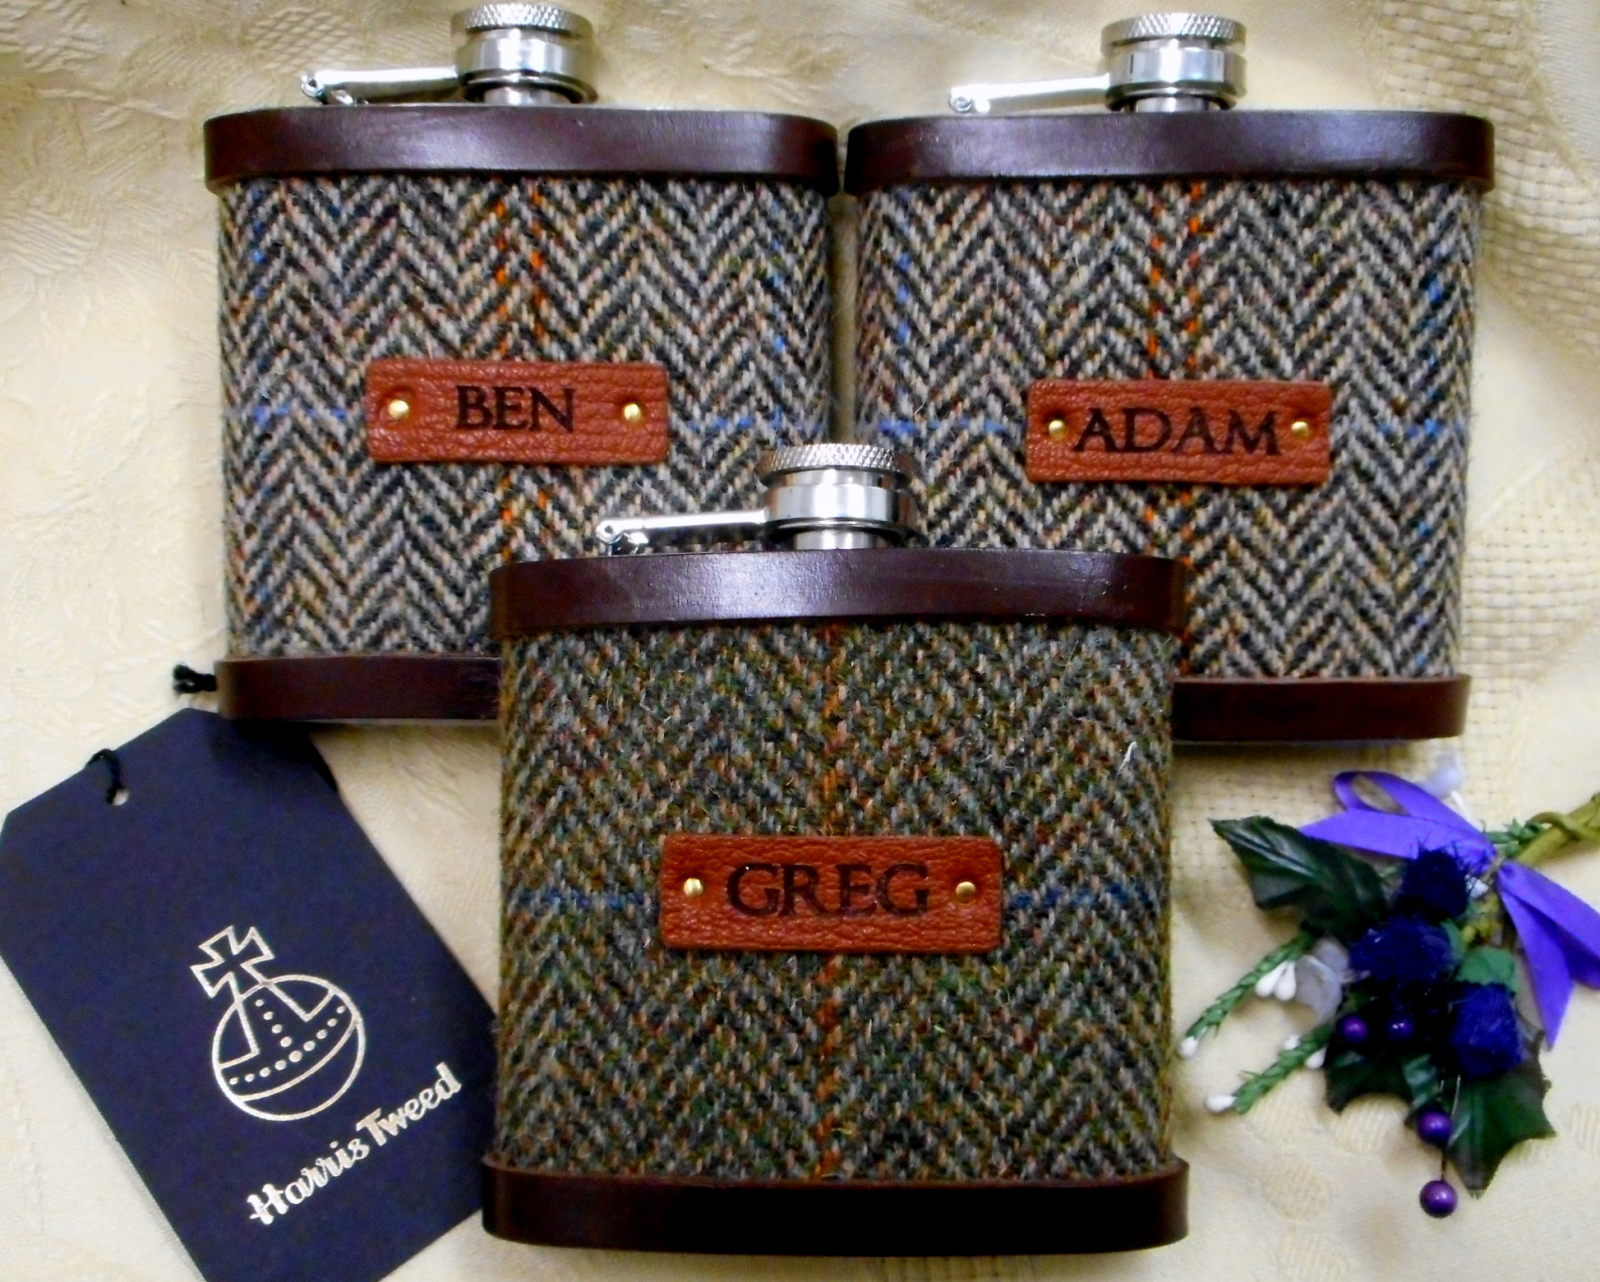 Scottish Wedding Gifts: Personalised Groomsman Gifts Harris Tweed Hip Flasks With